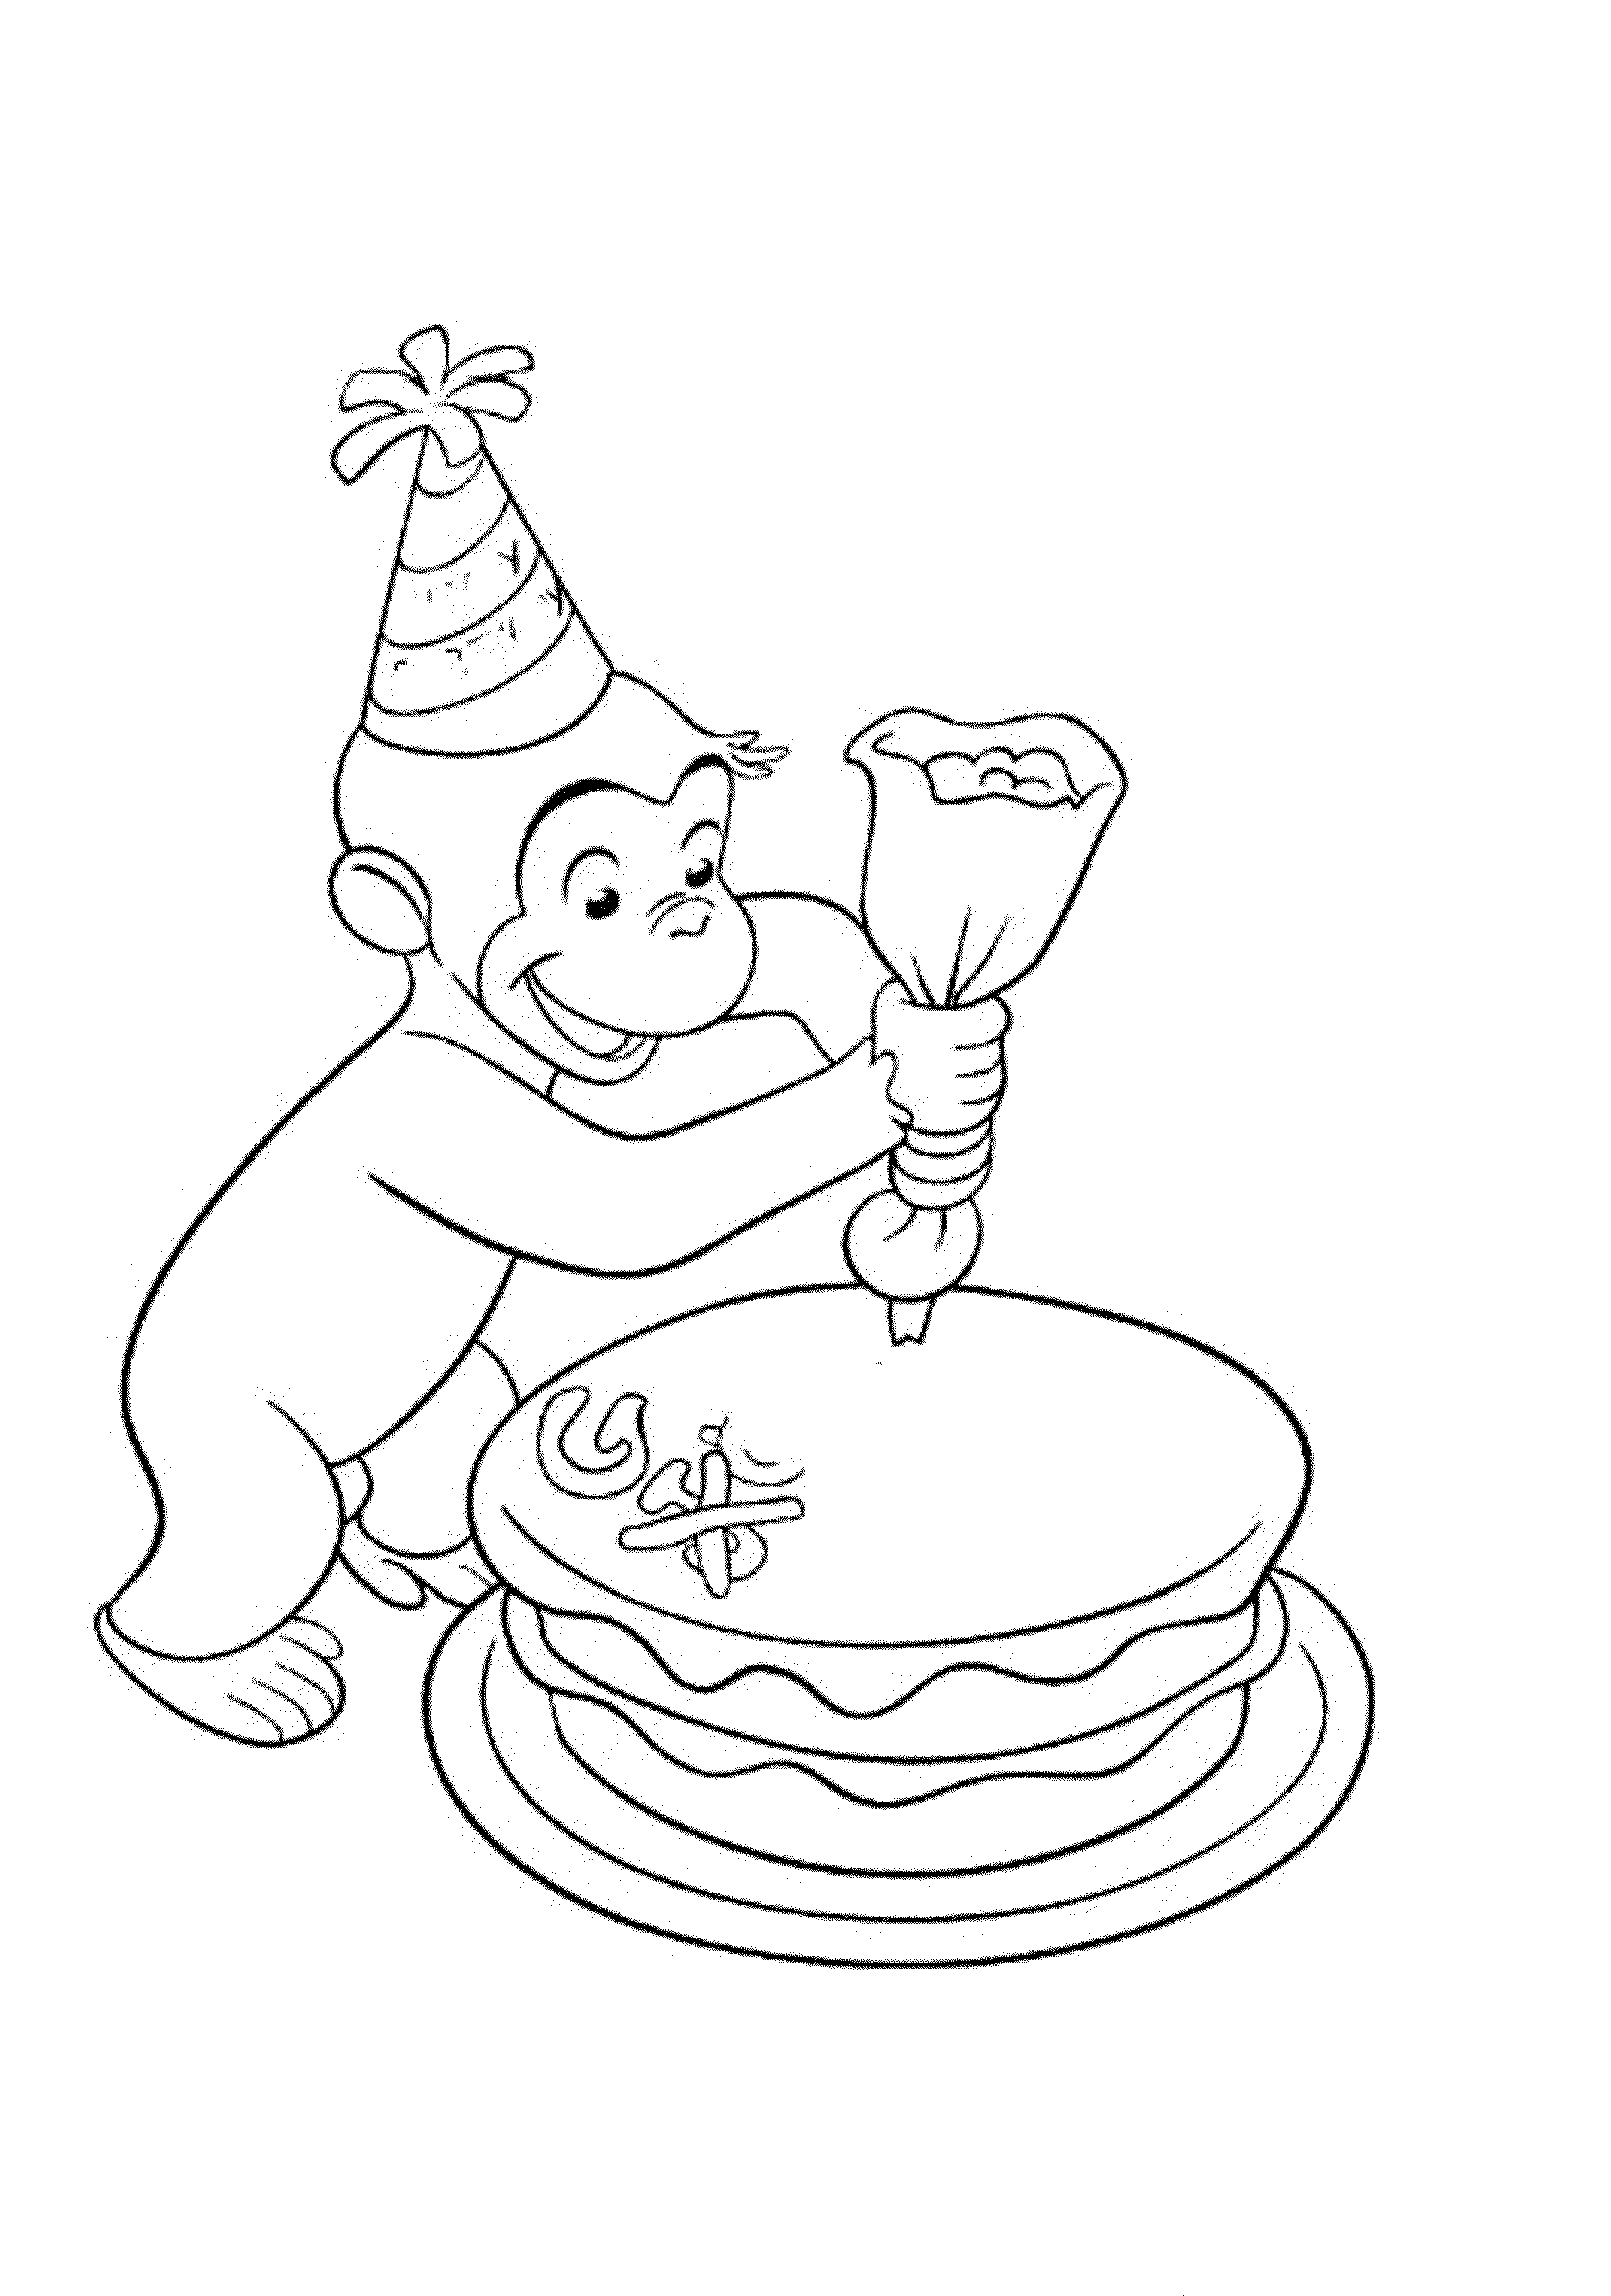 curious george coloring pages print download curious george coloring pages to curious coloring george pages